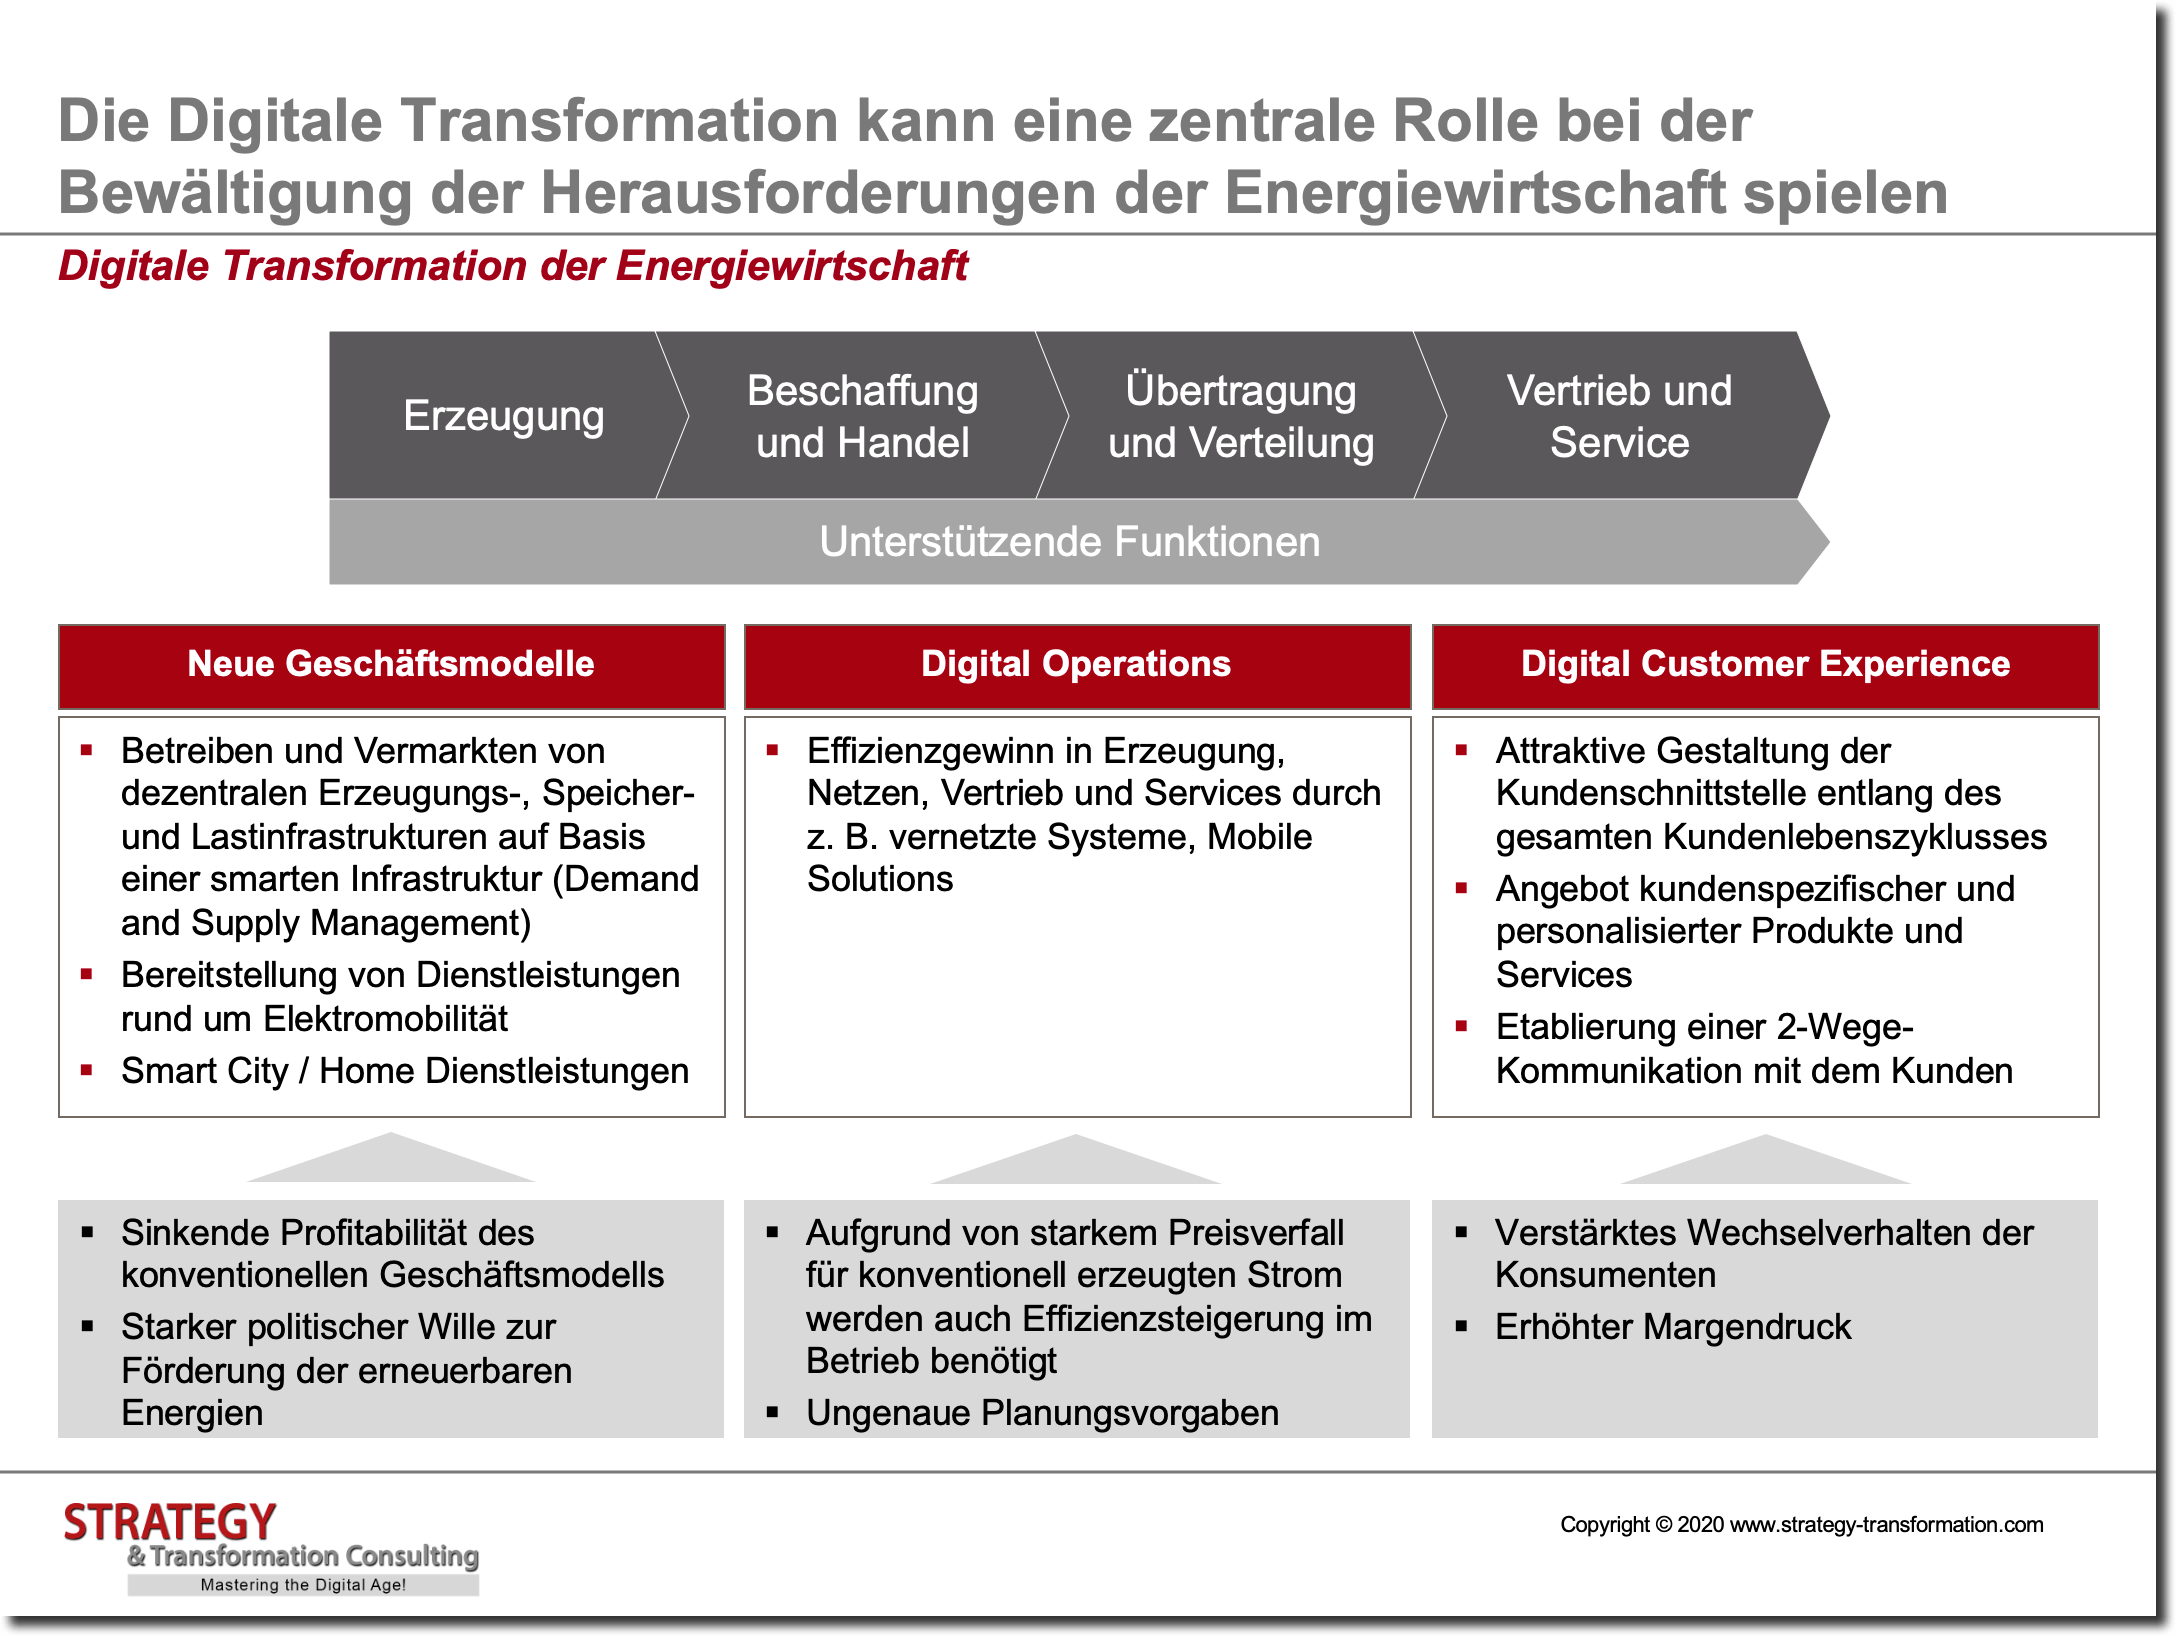 Digitale Transformation in der Energiewirtschaft